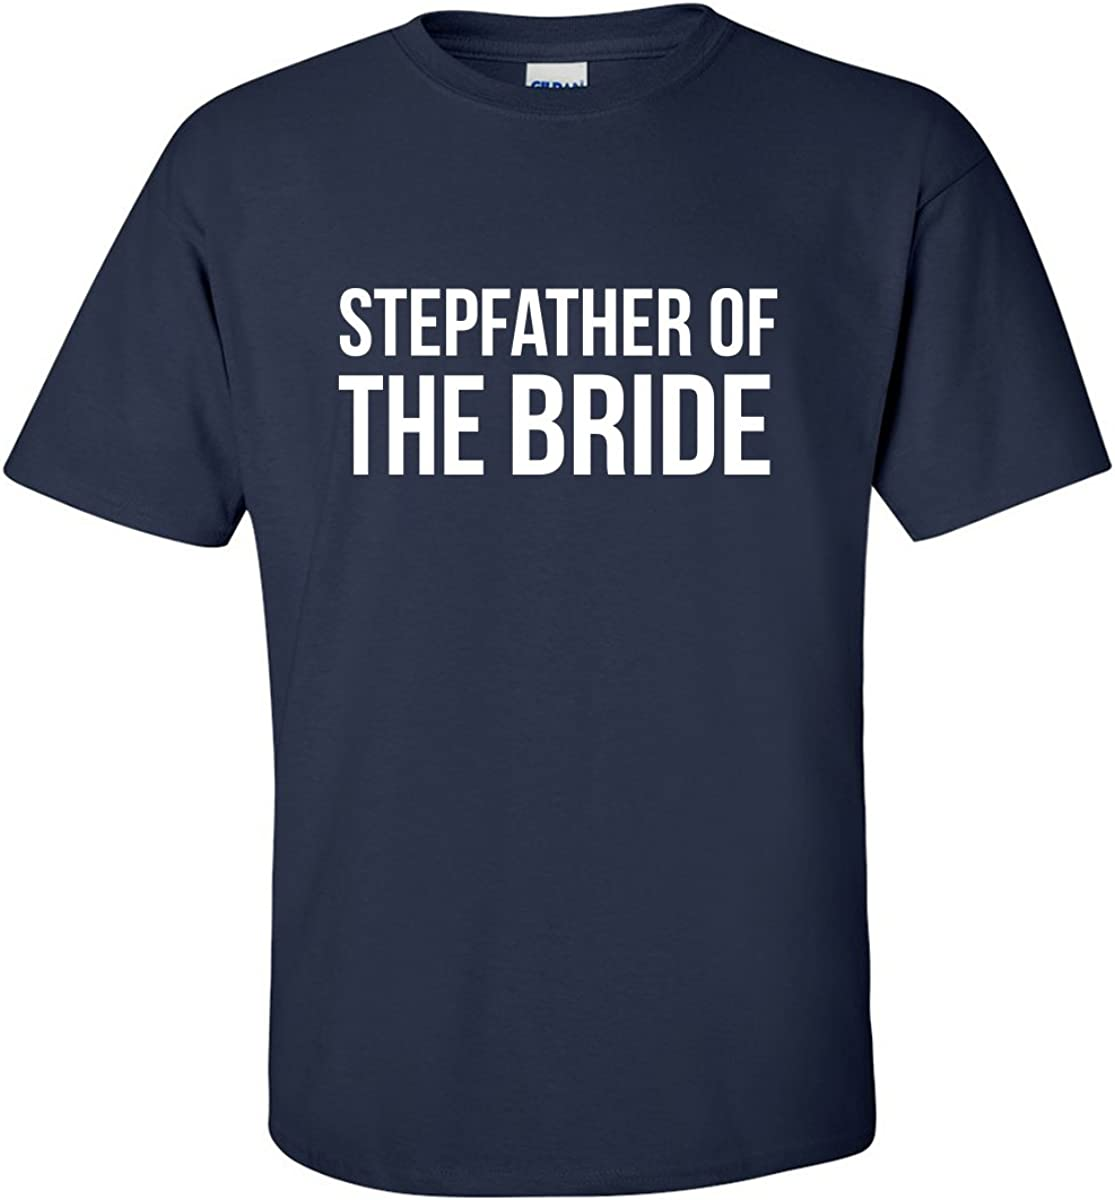 zerogravitee Stepfather of The Bride Adult Short Sleeve T-Shirt in 3 Colors